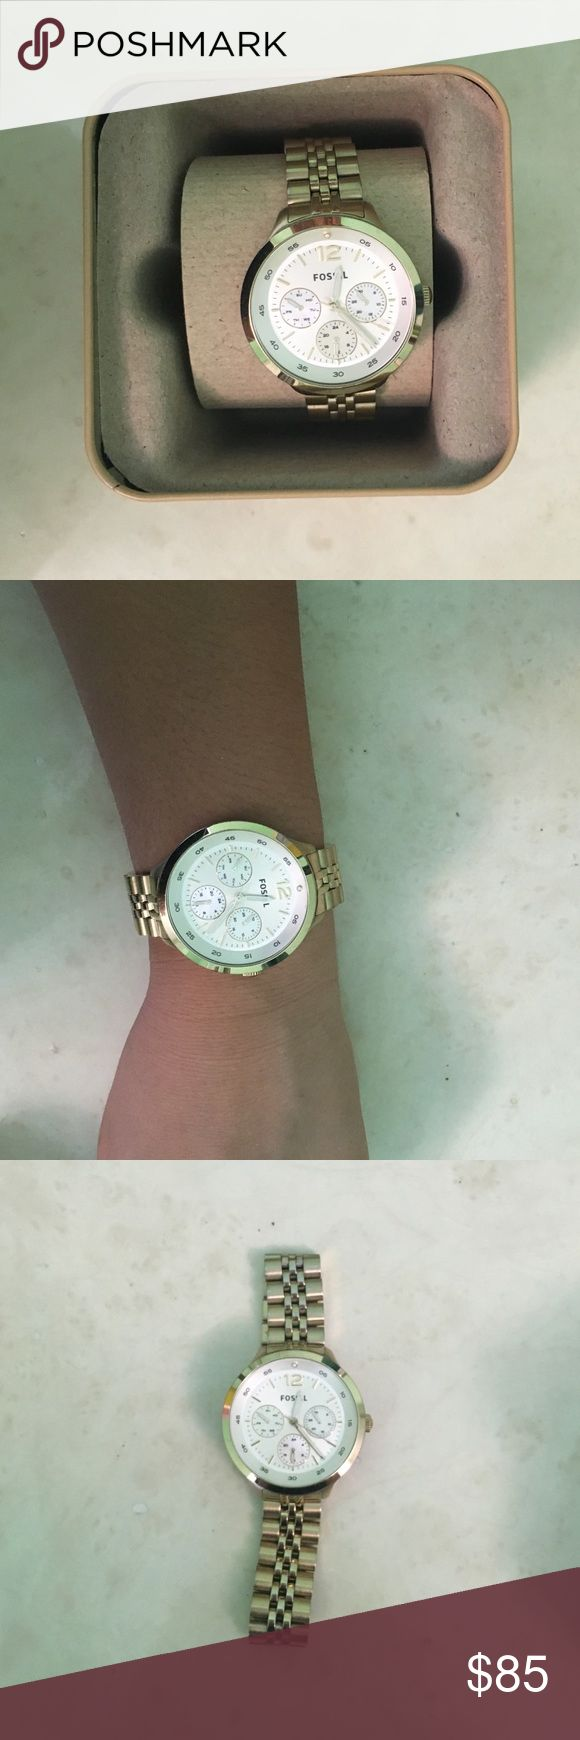 Fossil Women Watch in Gold Pre-owned in excellent condition. Used only a few times. Watch batteries need to be replaced. Authentic Fossil watch. Fossil Accessories Watches